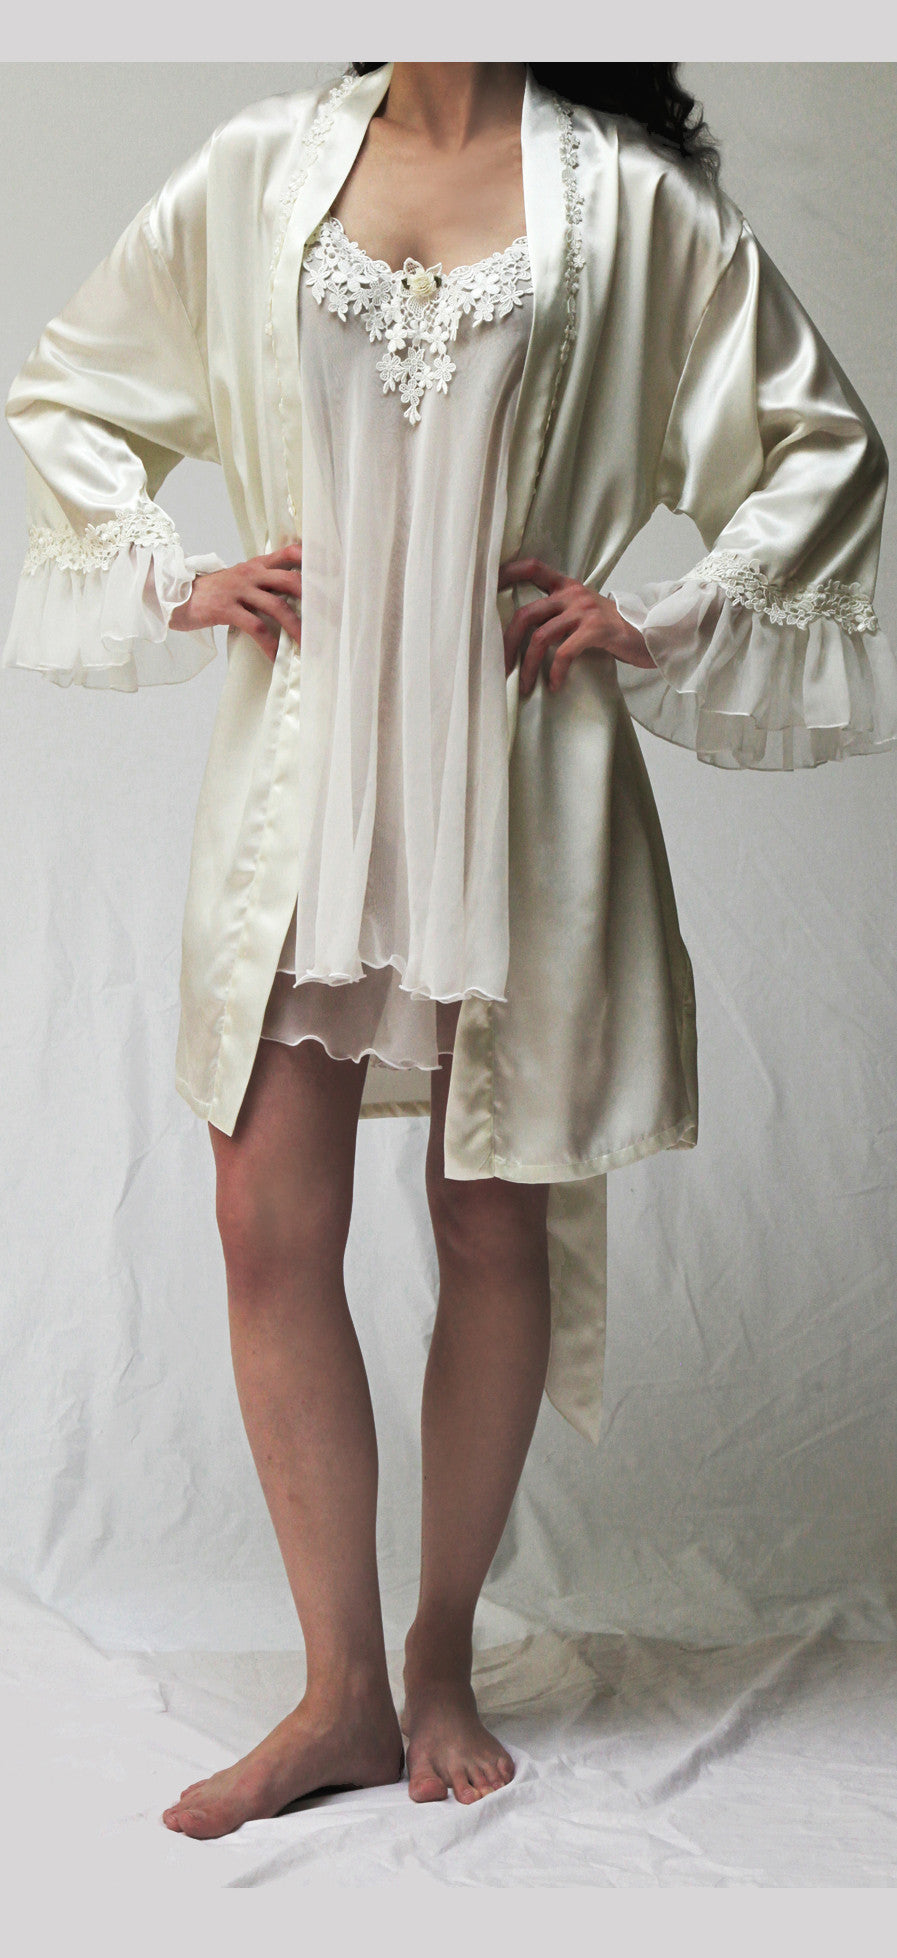 34020 Satin Short Kimono - ( Orchid color on sale)